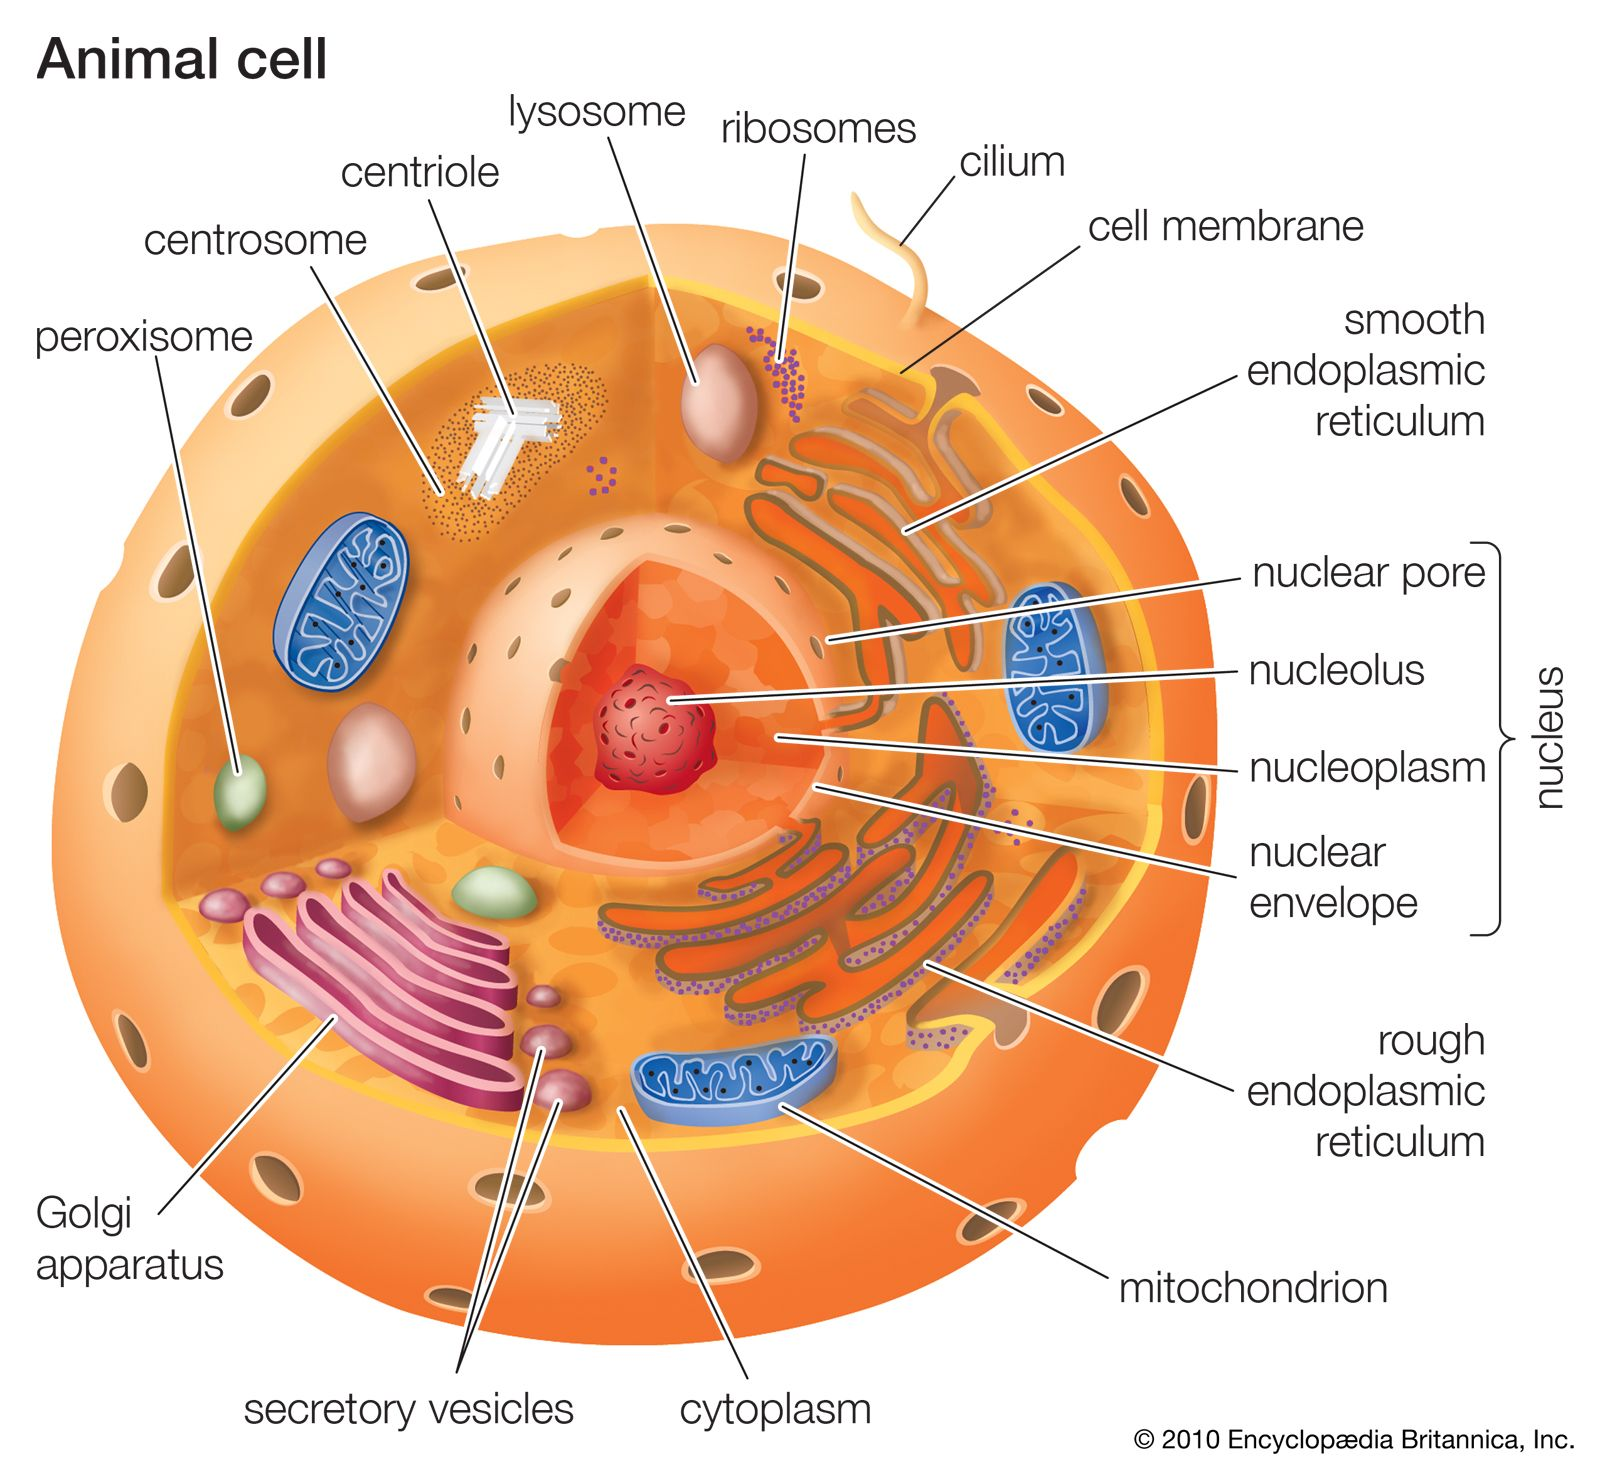 Animal cell biology pictures animal cell diagram homeschool animal cell biology pictures animal cell diagram ccuart Image collections